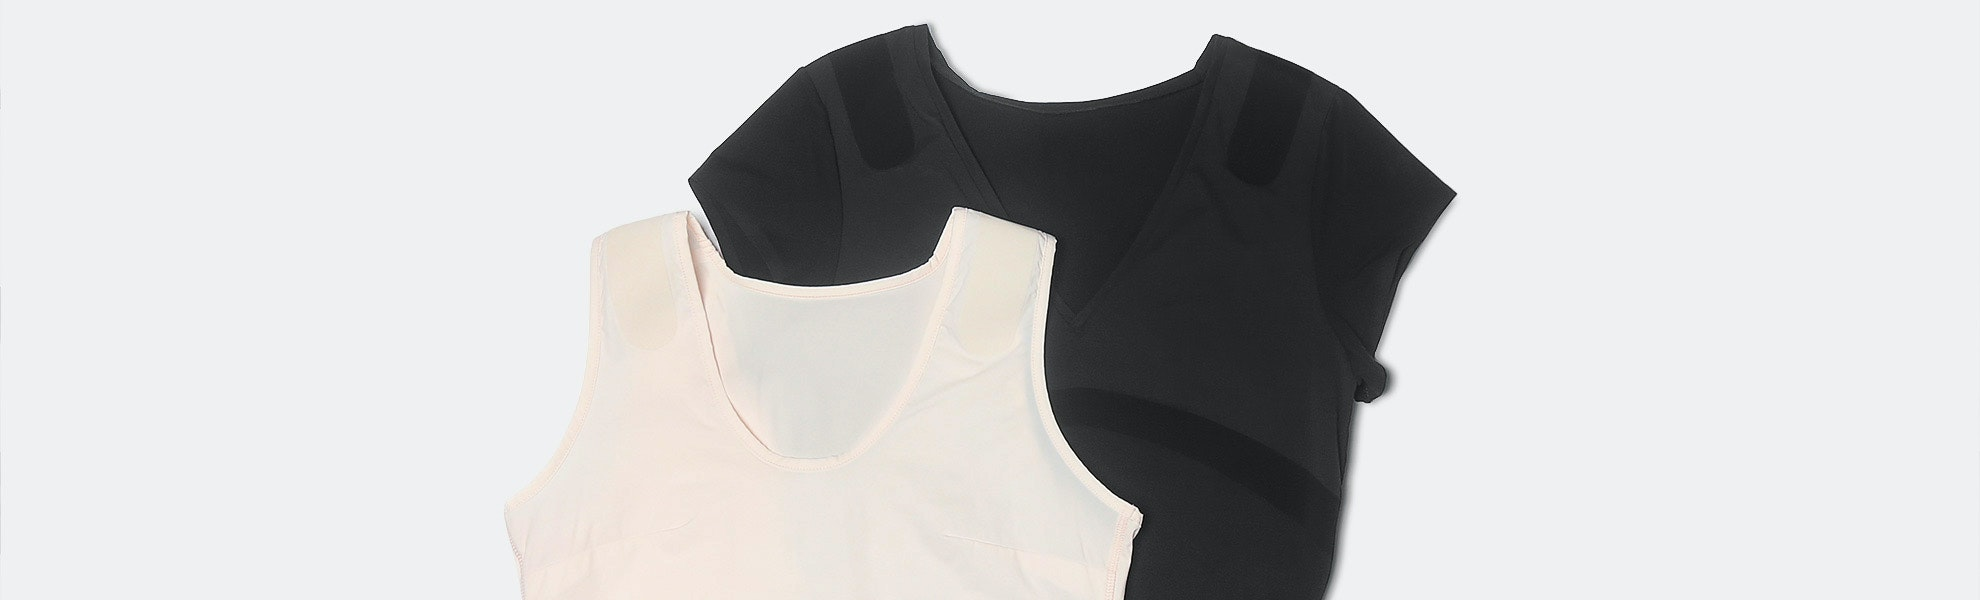 Percko T-Shirt For Posture